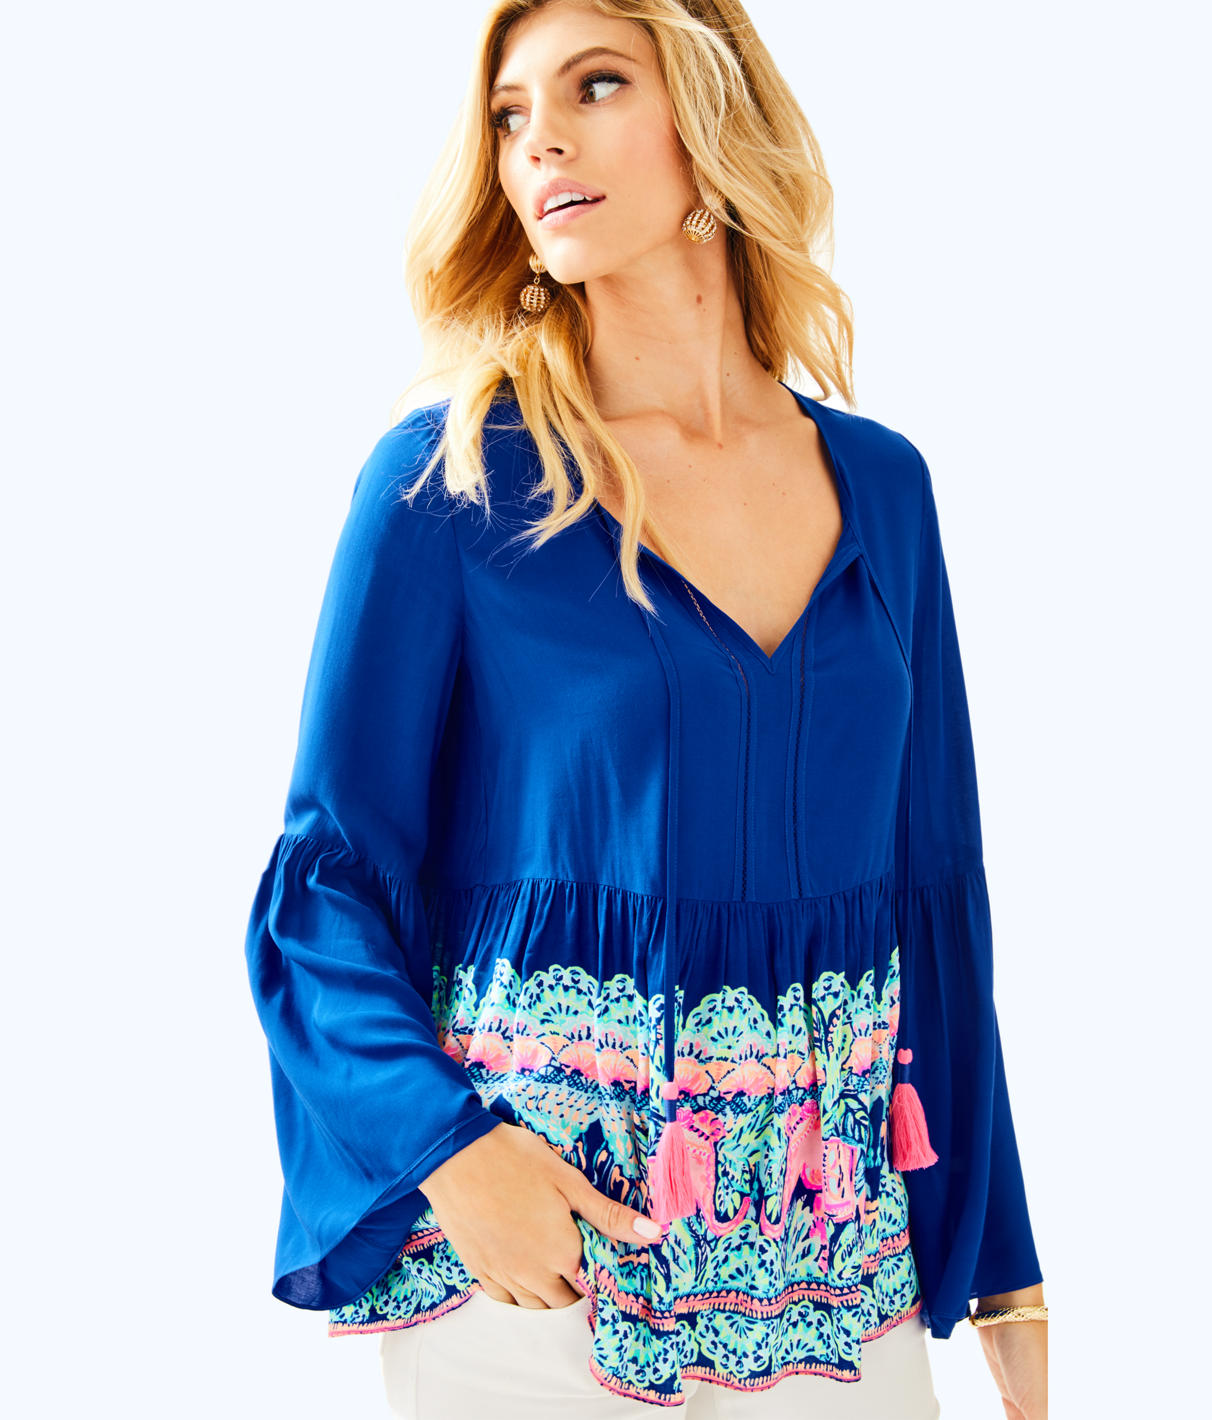 Lilly Pulitzer Lilly Pulitzer Womens Kahli Top